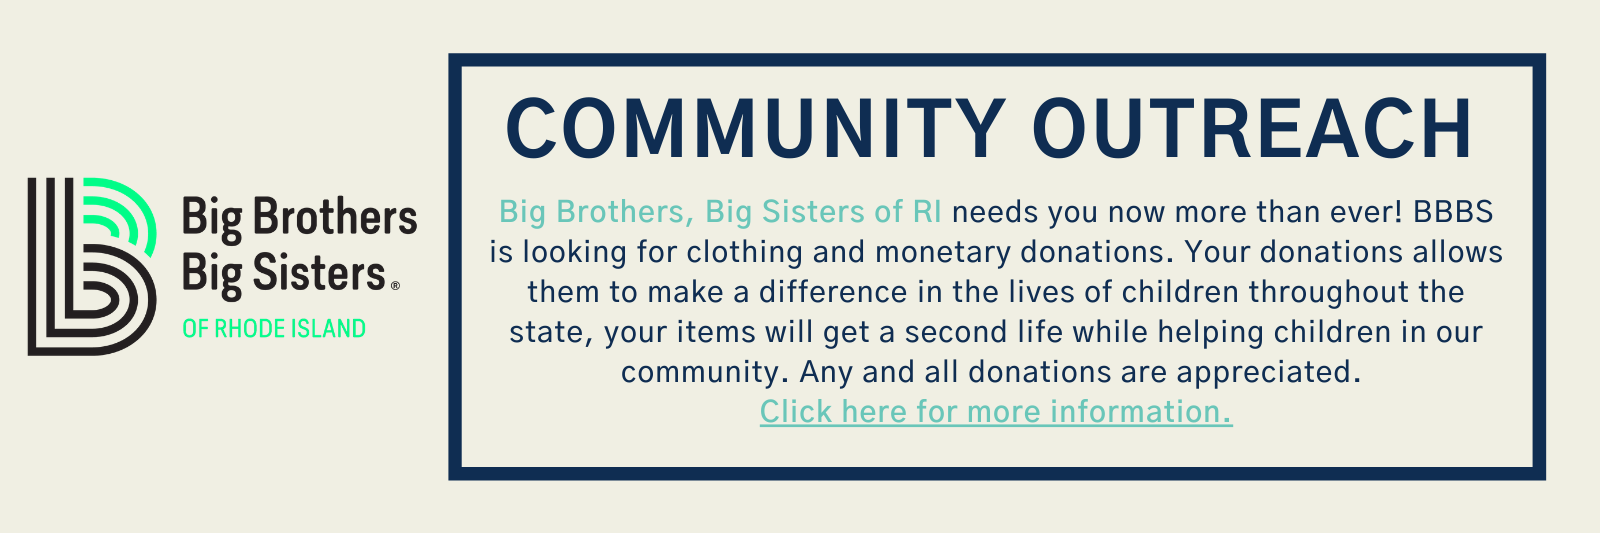 Community-Outreach--Big-Brothers.-Big-Sisters-RI.png